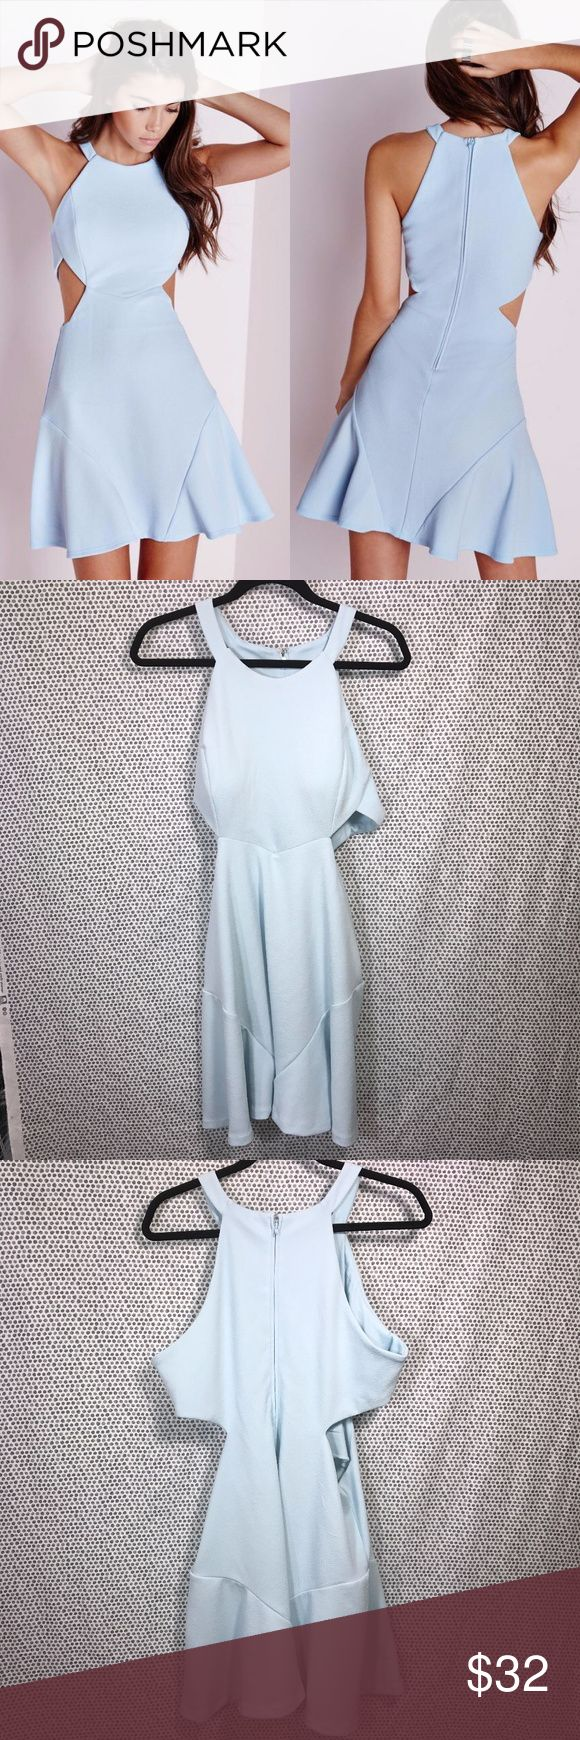 Missguided Stretch Blue Crepe Cut Out Skater Dress * Missguided Stretch Powder Blue Crepe Cut Out Skater Dress * Size 16 * Made of 96% polyester & 4% spandex.  * Pre-owned, but in great used condition. No holes, stains or pilling.  * Measurements: Underarm to underarm is 19 inches. Length is 31 1/2 inches. Missguided Dresses Mini